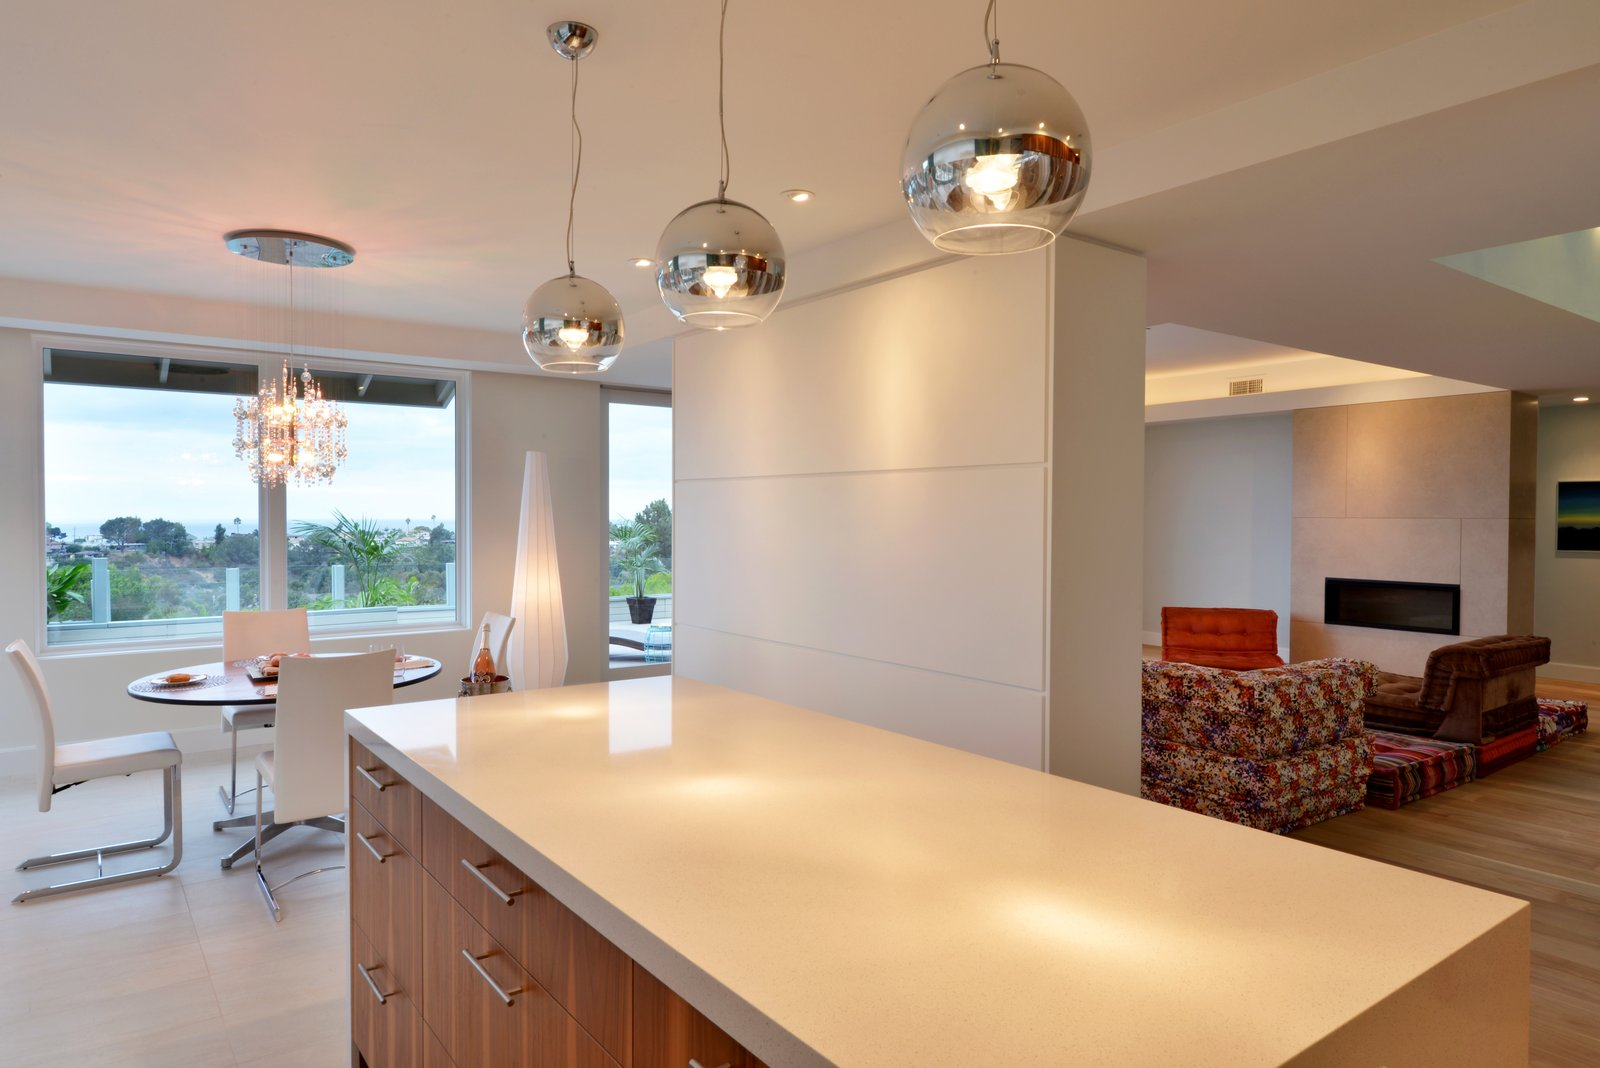 The 1Light pendants above the kitchen island are from Eurofase.